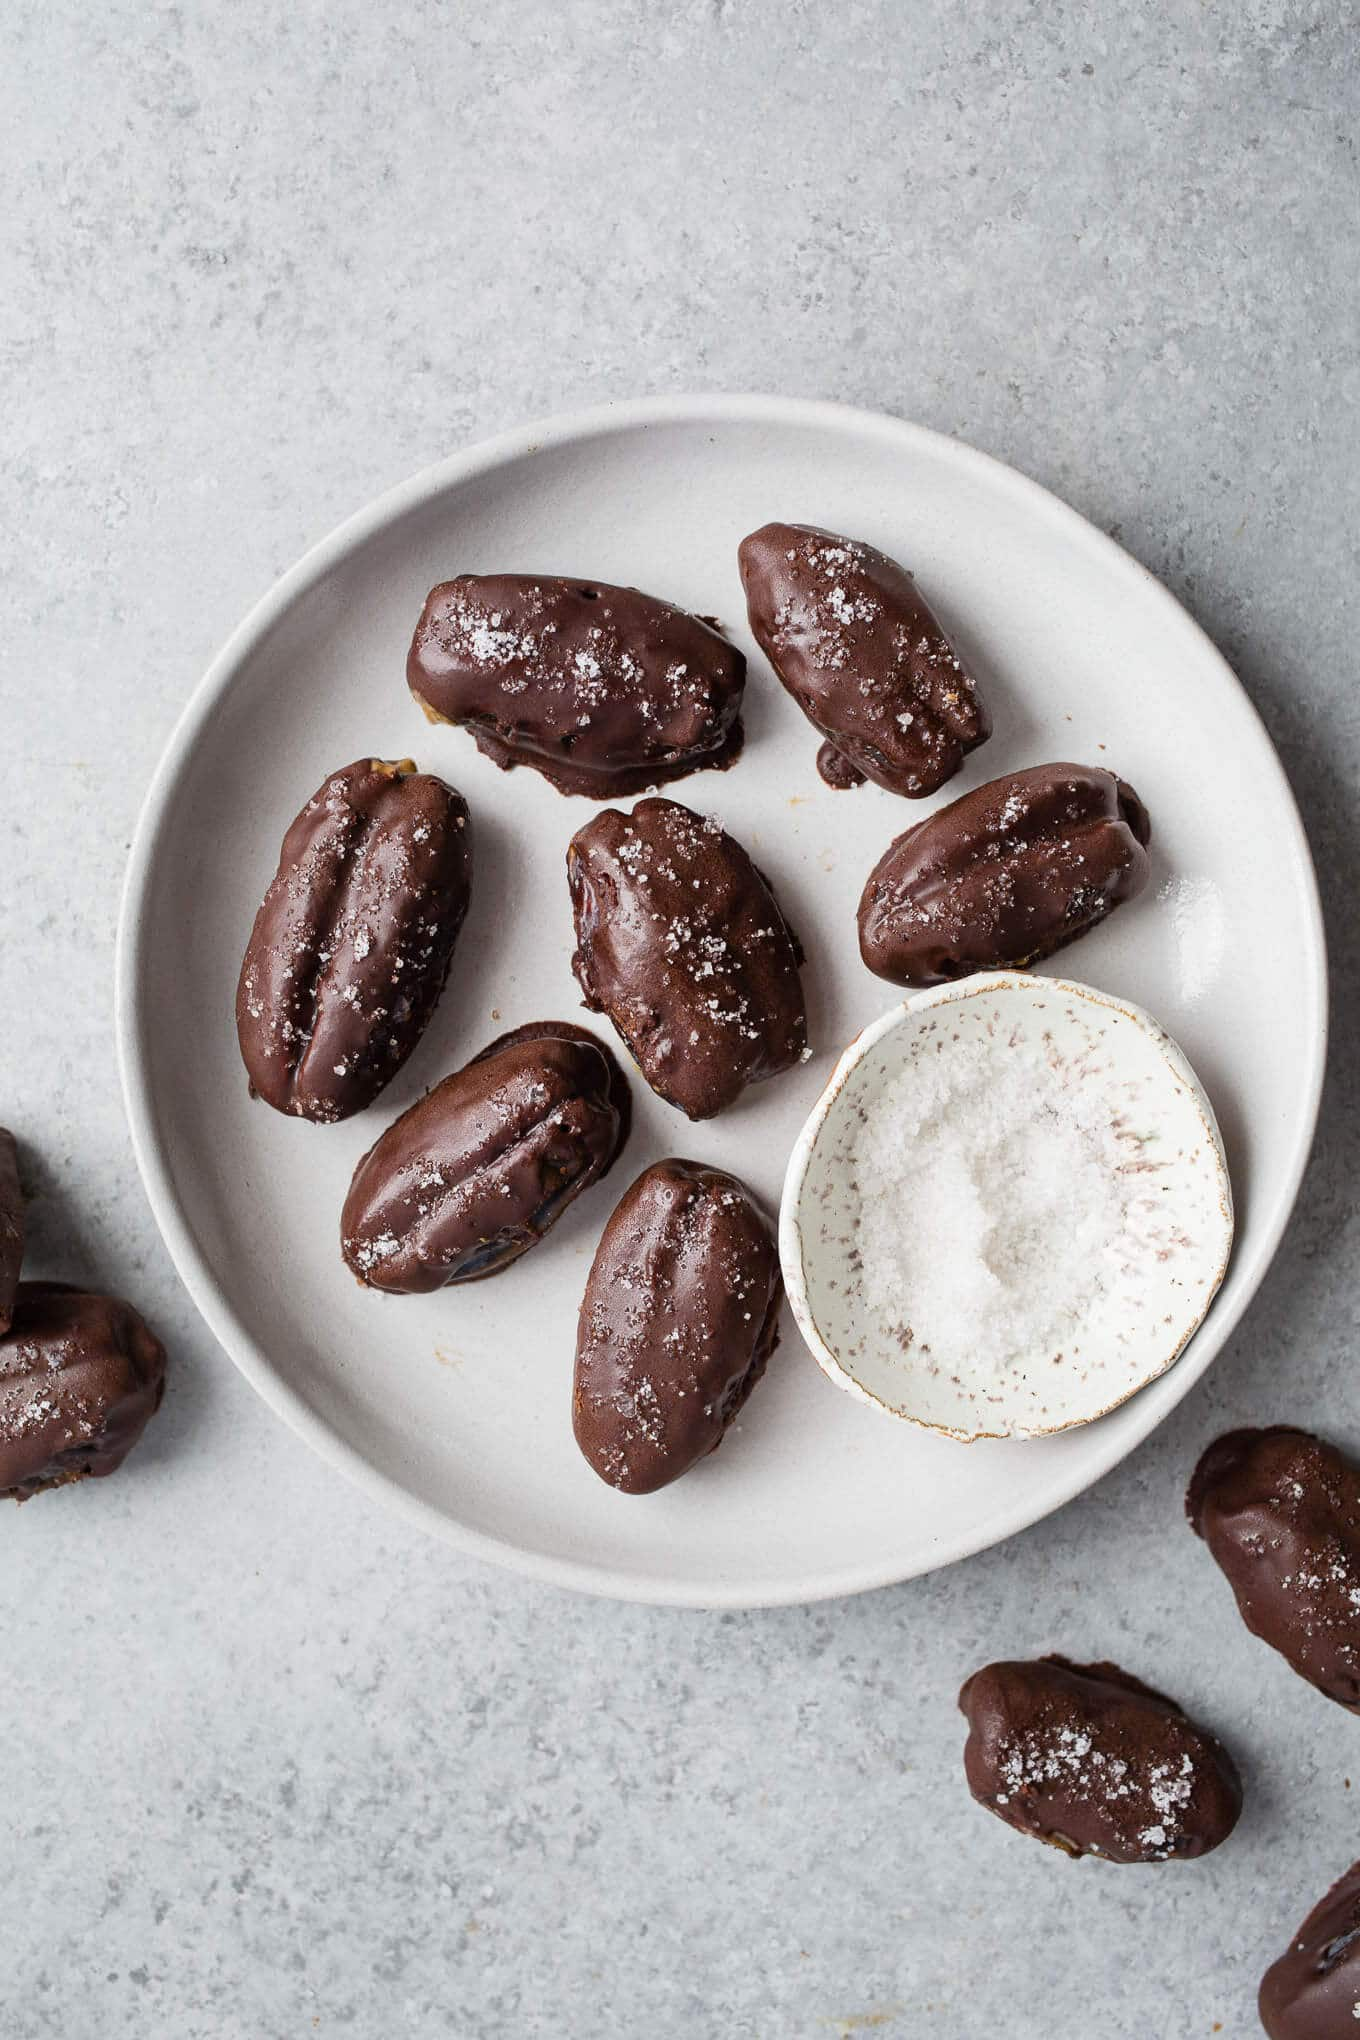 These Chocolate-Covered Almond Butter Stuffed Dates topped with sea salt are gluten-free, vegan, and refined sugar-free. Perfect for a snack or dessert!